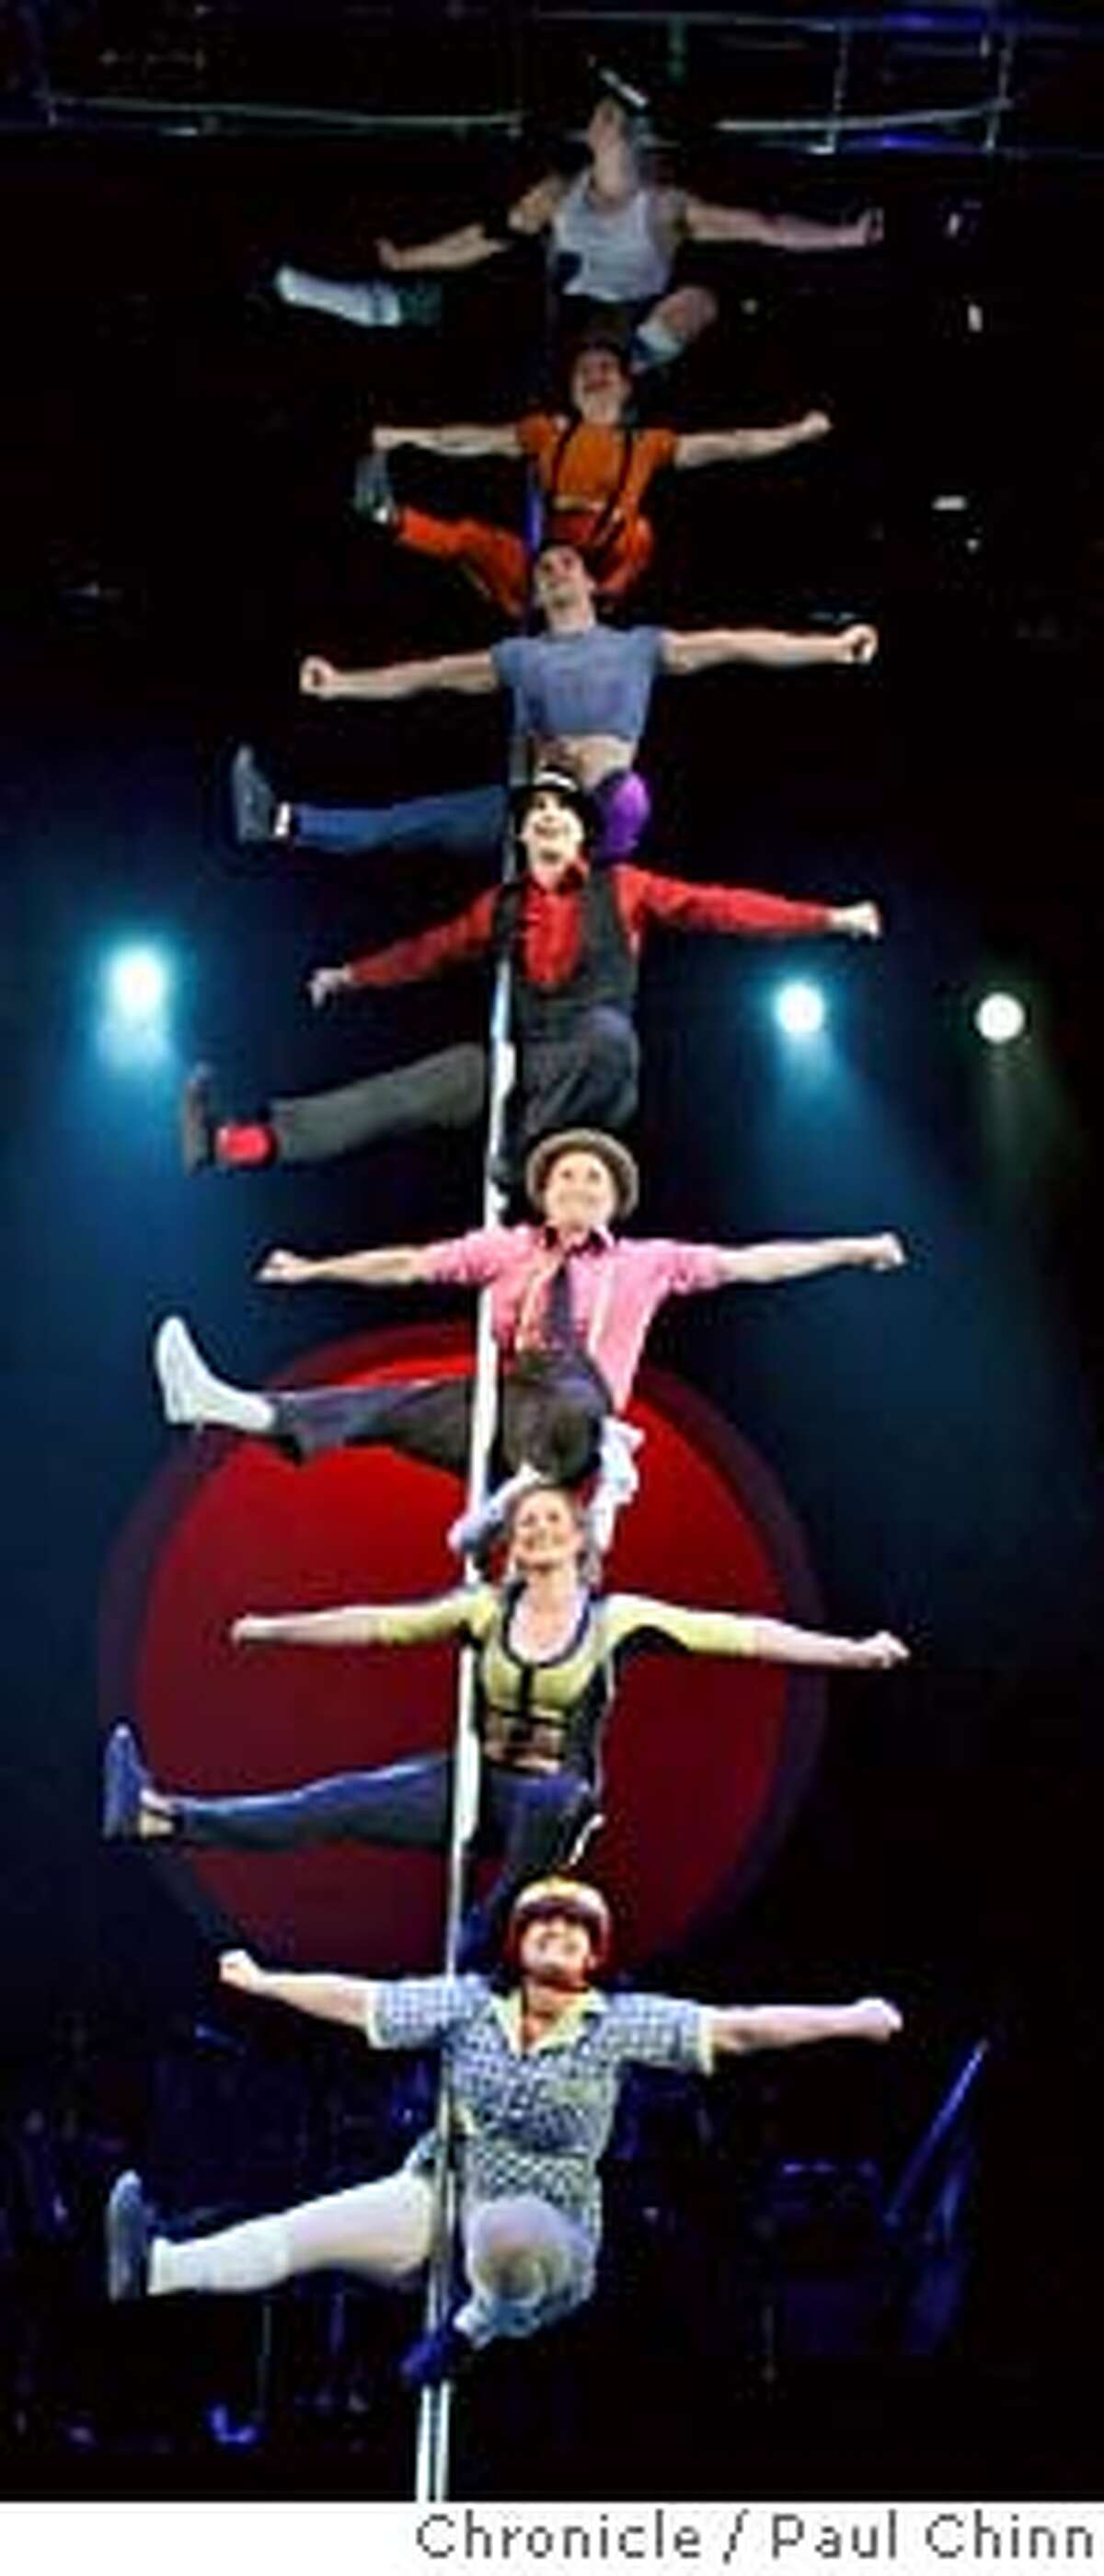 Circus Oz performs (on a pole) on stage at Zellerbach Hall in Berkeley, Calif. on Thursday, Nov. 29, 2007. The Australian troupe is performing its Laughing at Gravity show on the Cal campus through this Sunday. PAUL CHINN/The Chronicle MANDATORY CREDIT FOR PHOTOGRAPHER AND S.F. CHRONICLE/NO SALES - MAGS OUT